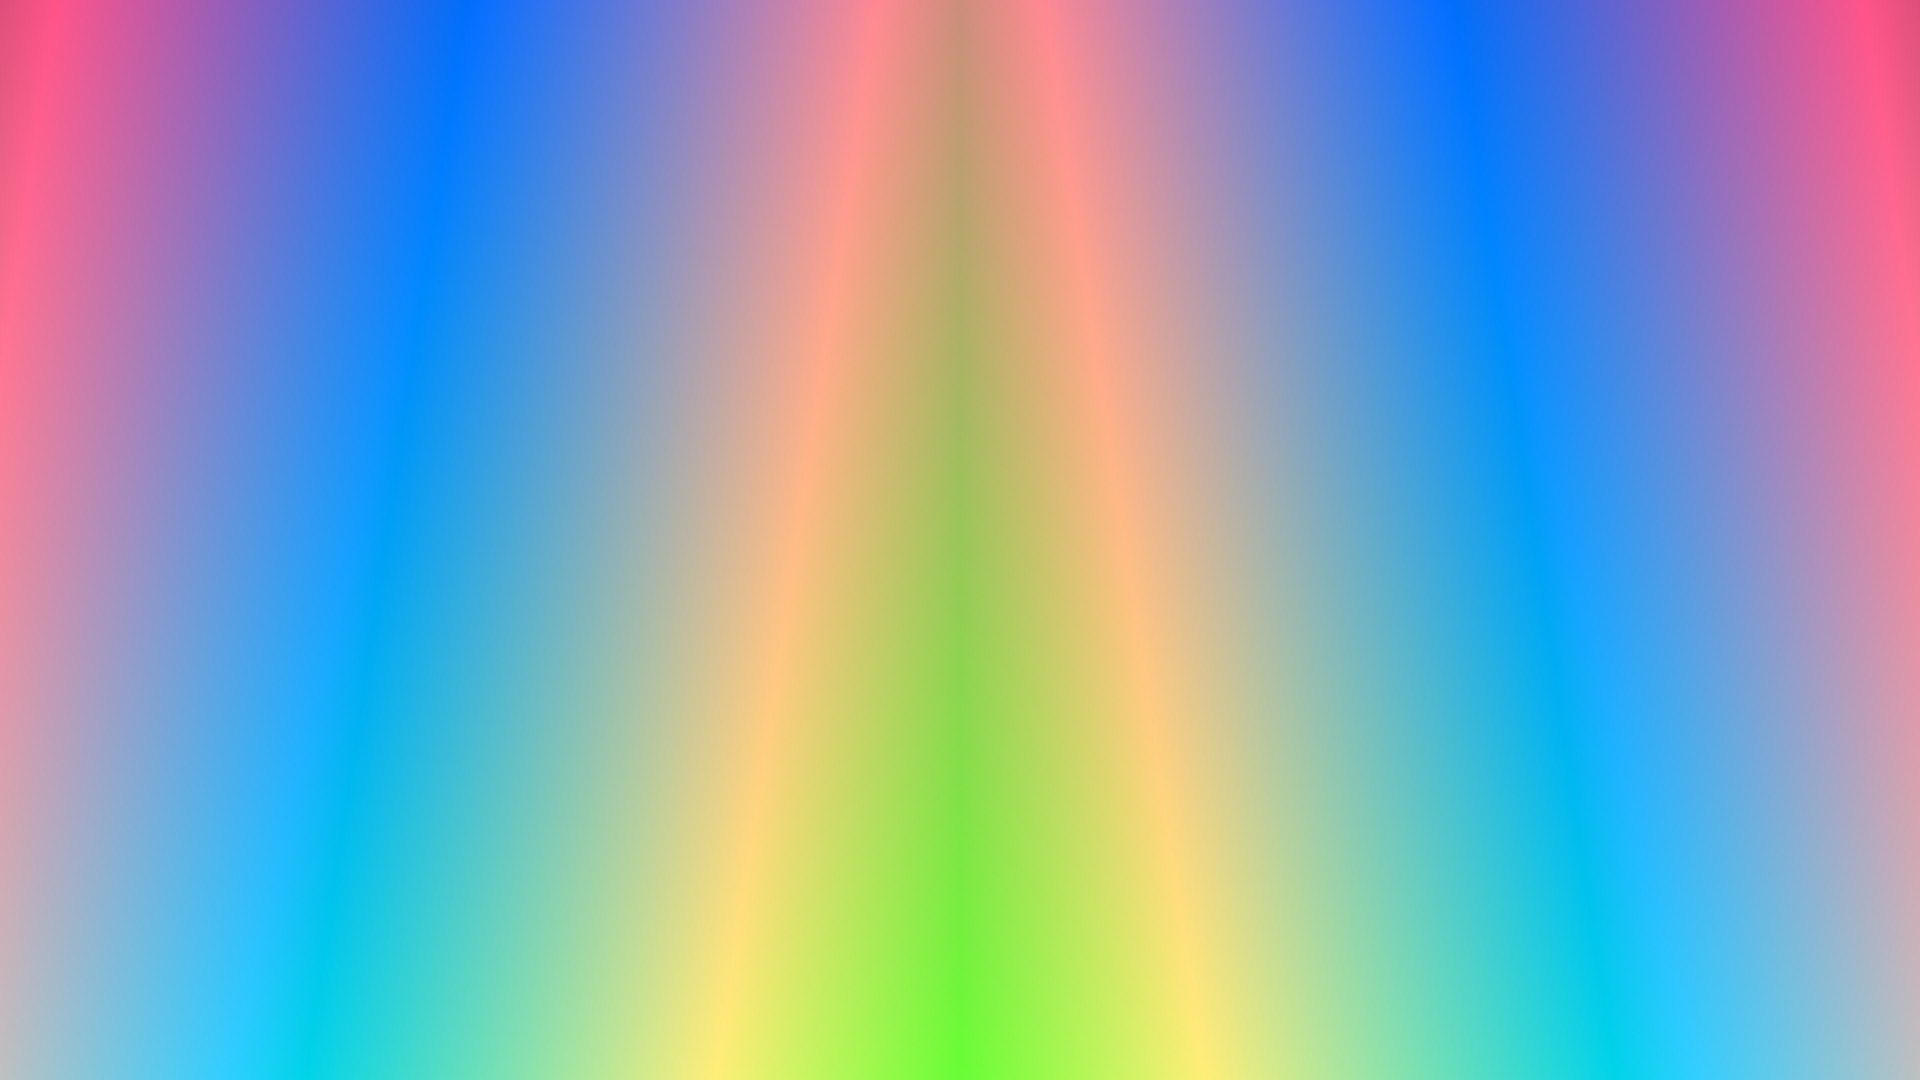 Beatles Iphone Wallpaper Free Background Gradient 183 ① Download Free High Resolution